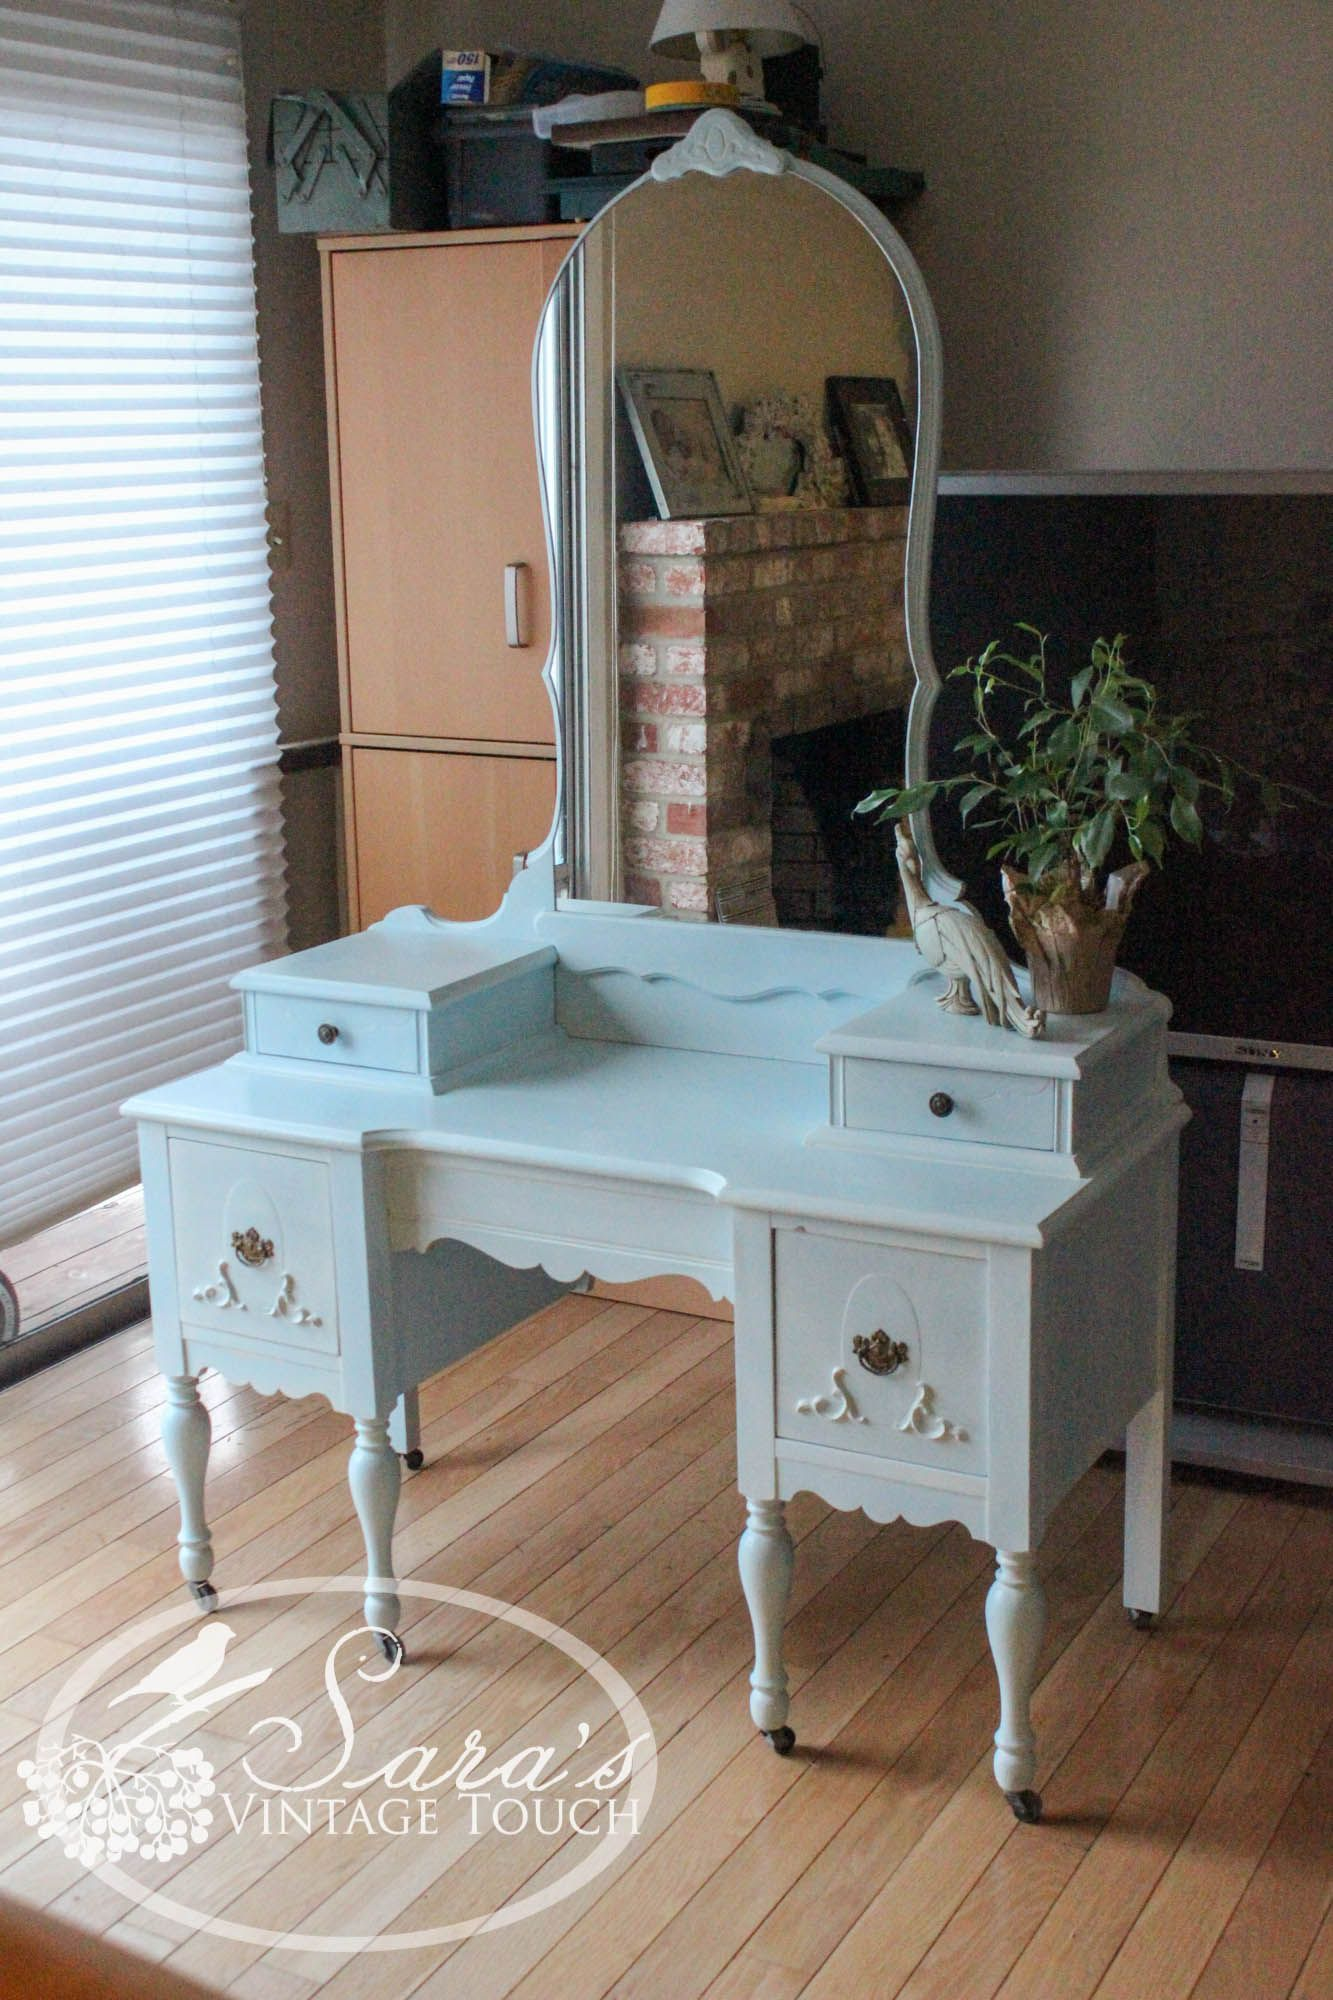 Antique makeup vanity / dressing table. Refinished in Maison Blanche's  chalk paint by Sara's Vintage Touch  https://www.facebook.com/SarasVintageTouch - Antique Makeup Vanity / Dressing Table. Refinished In Maison